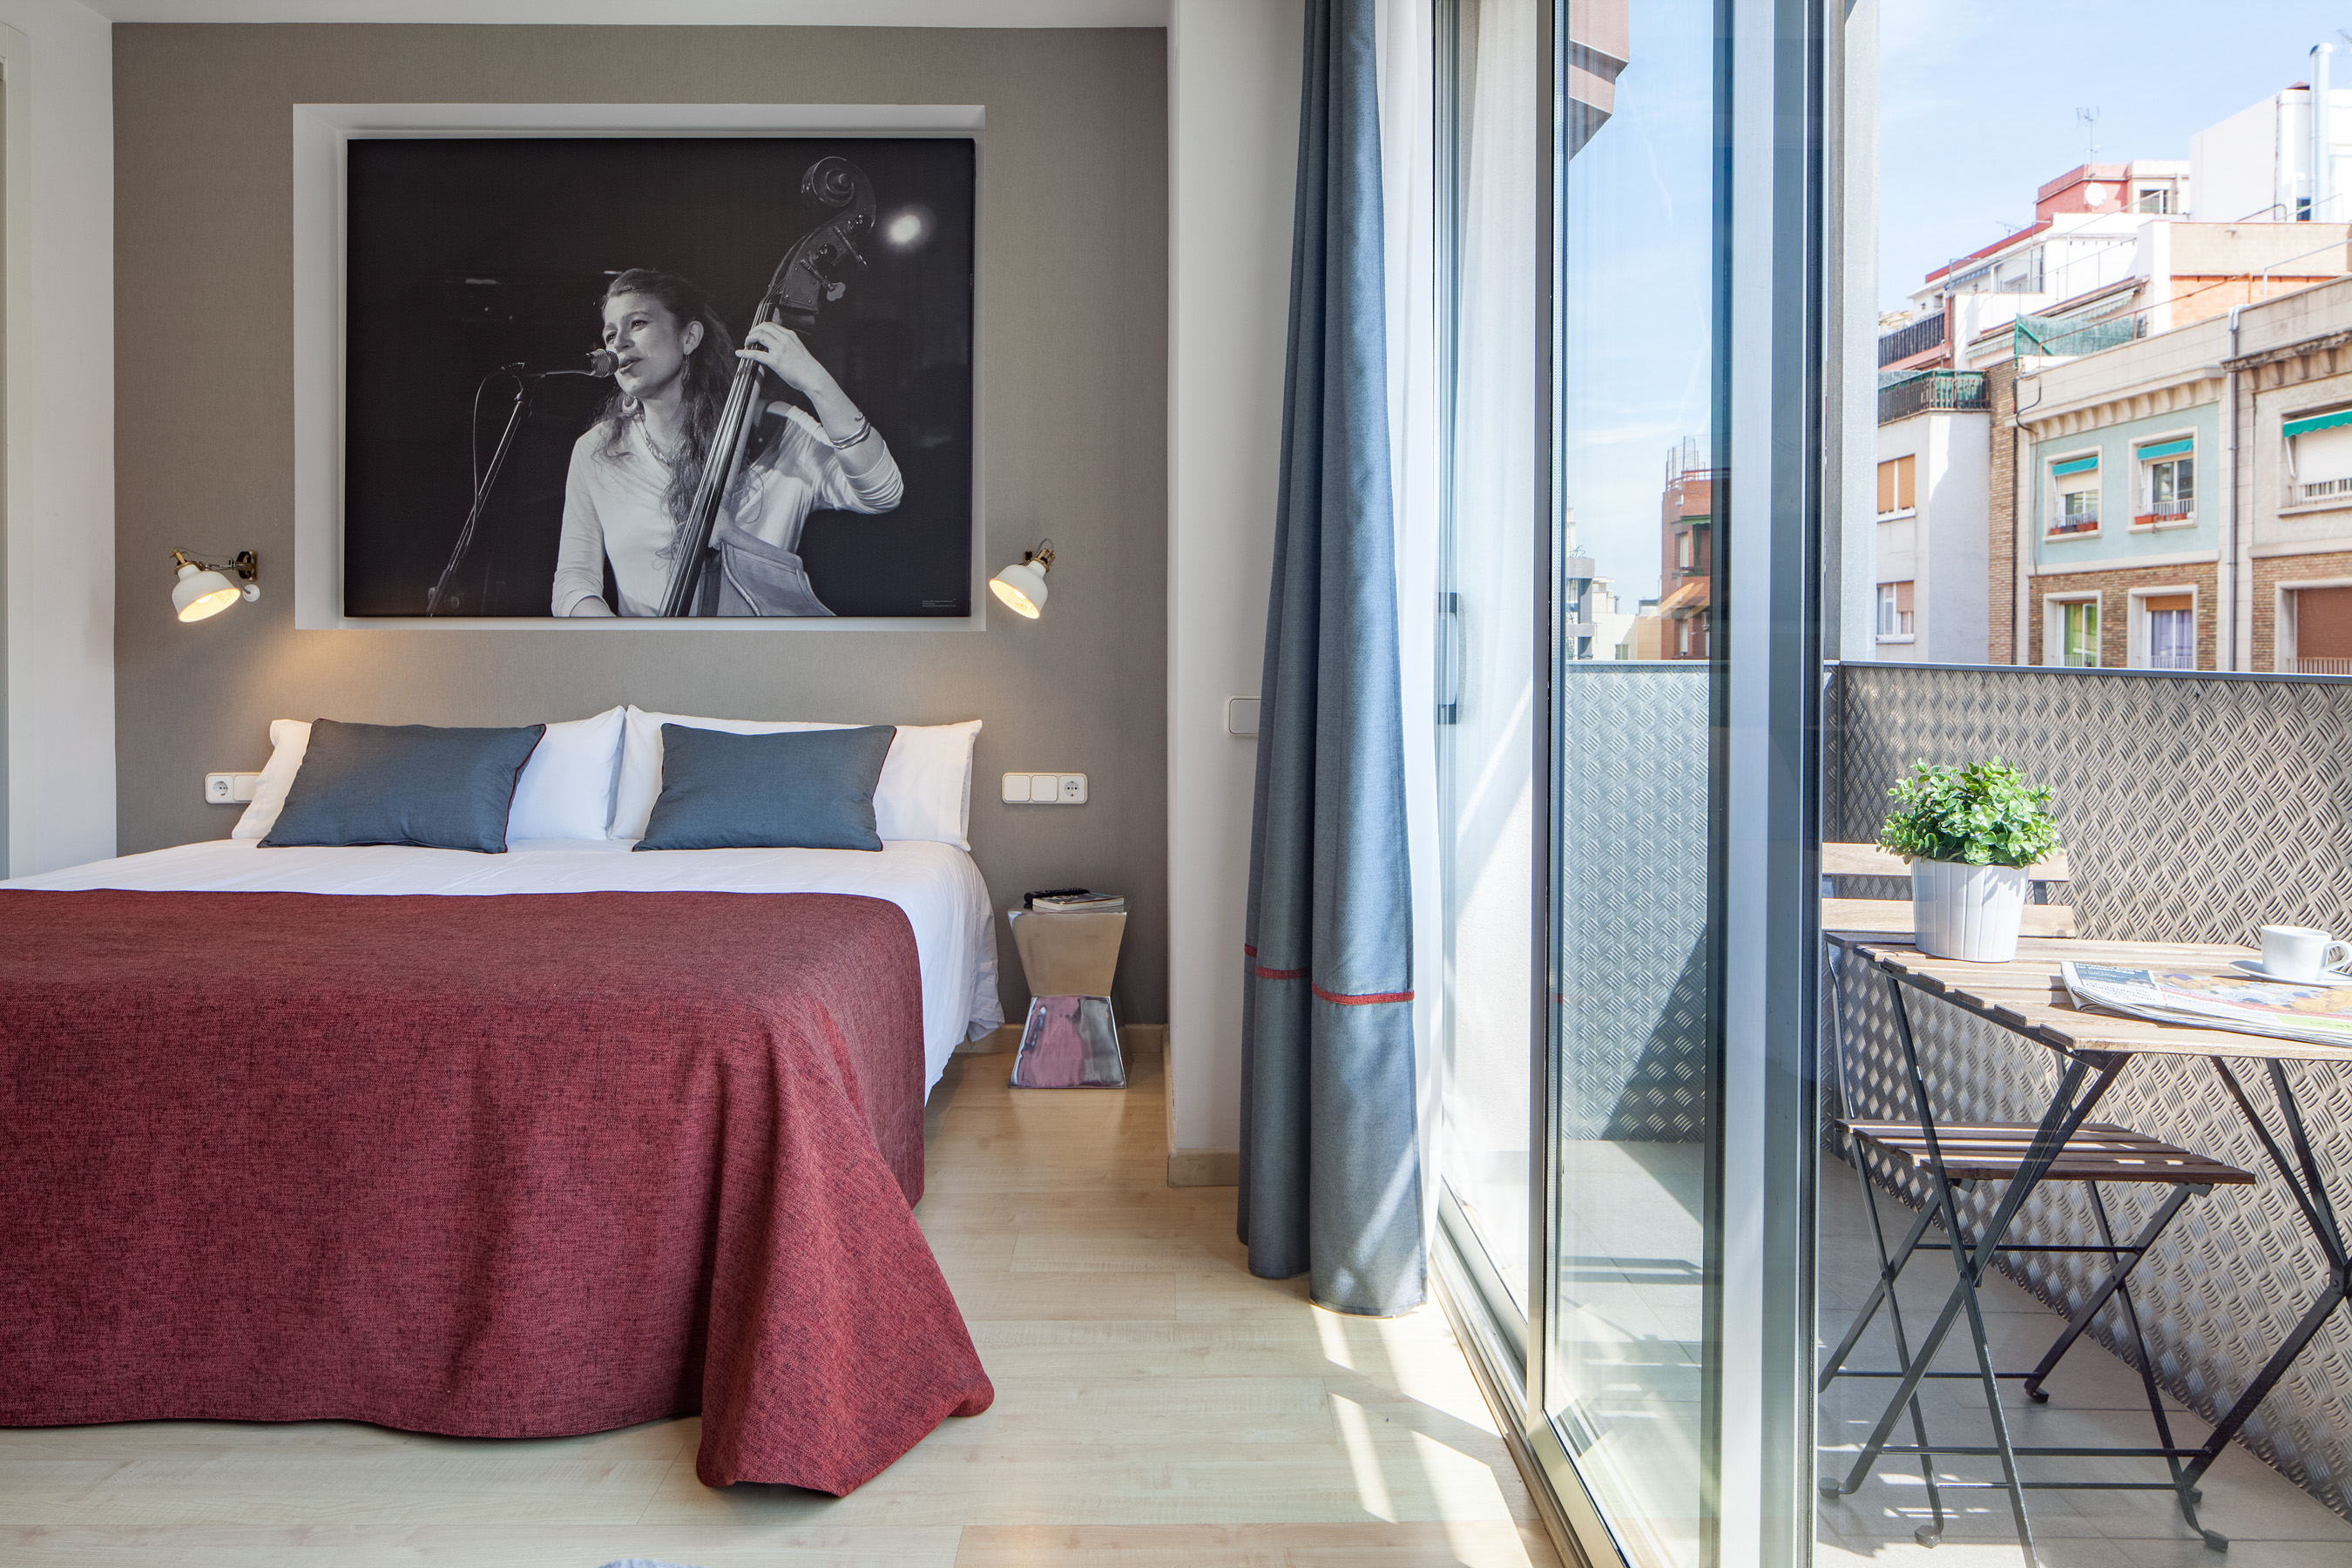 hot jazz 21 apartment barcelona 8 Fantastic Apartments near Sagrada Familia!